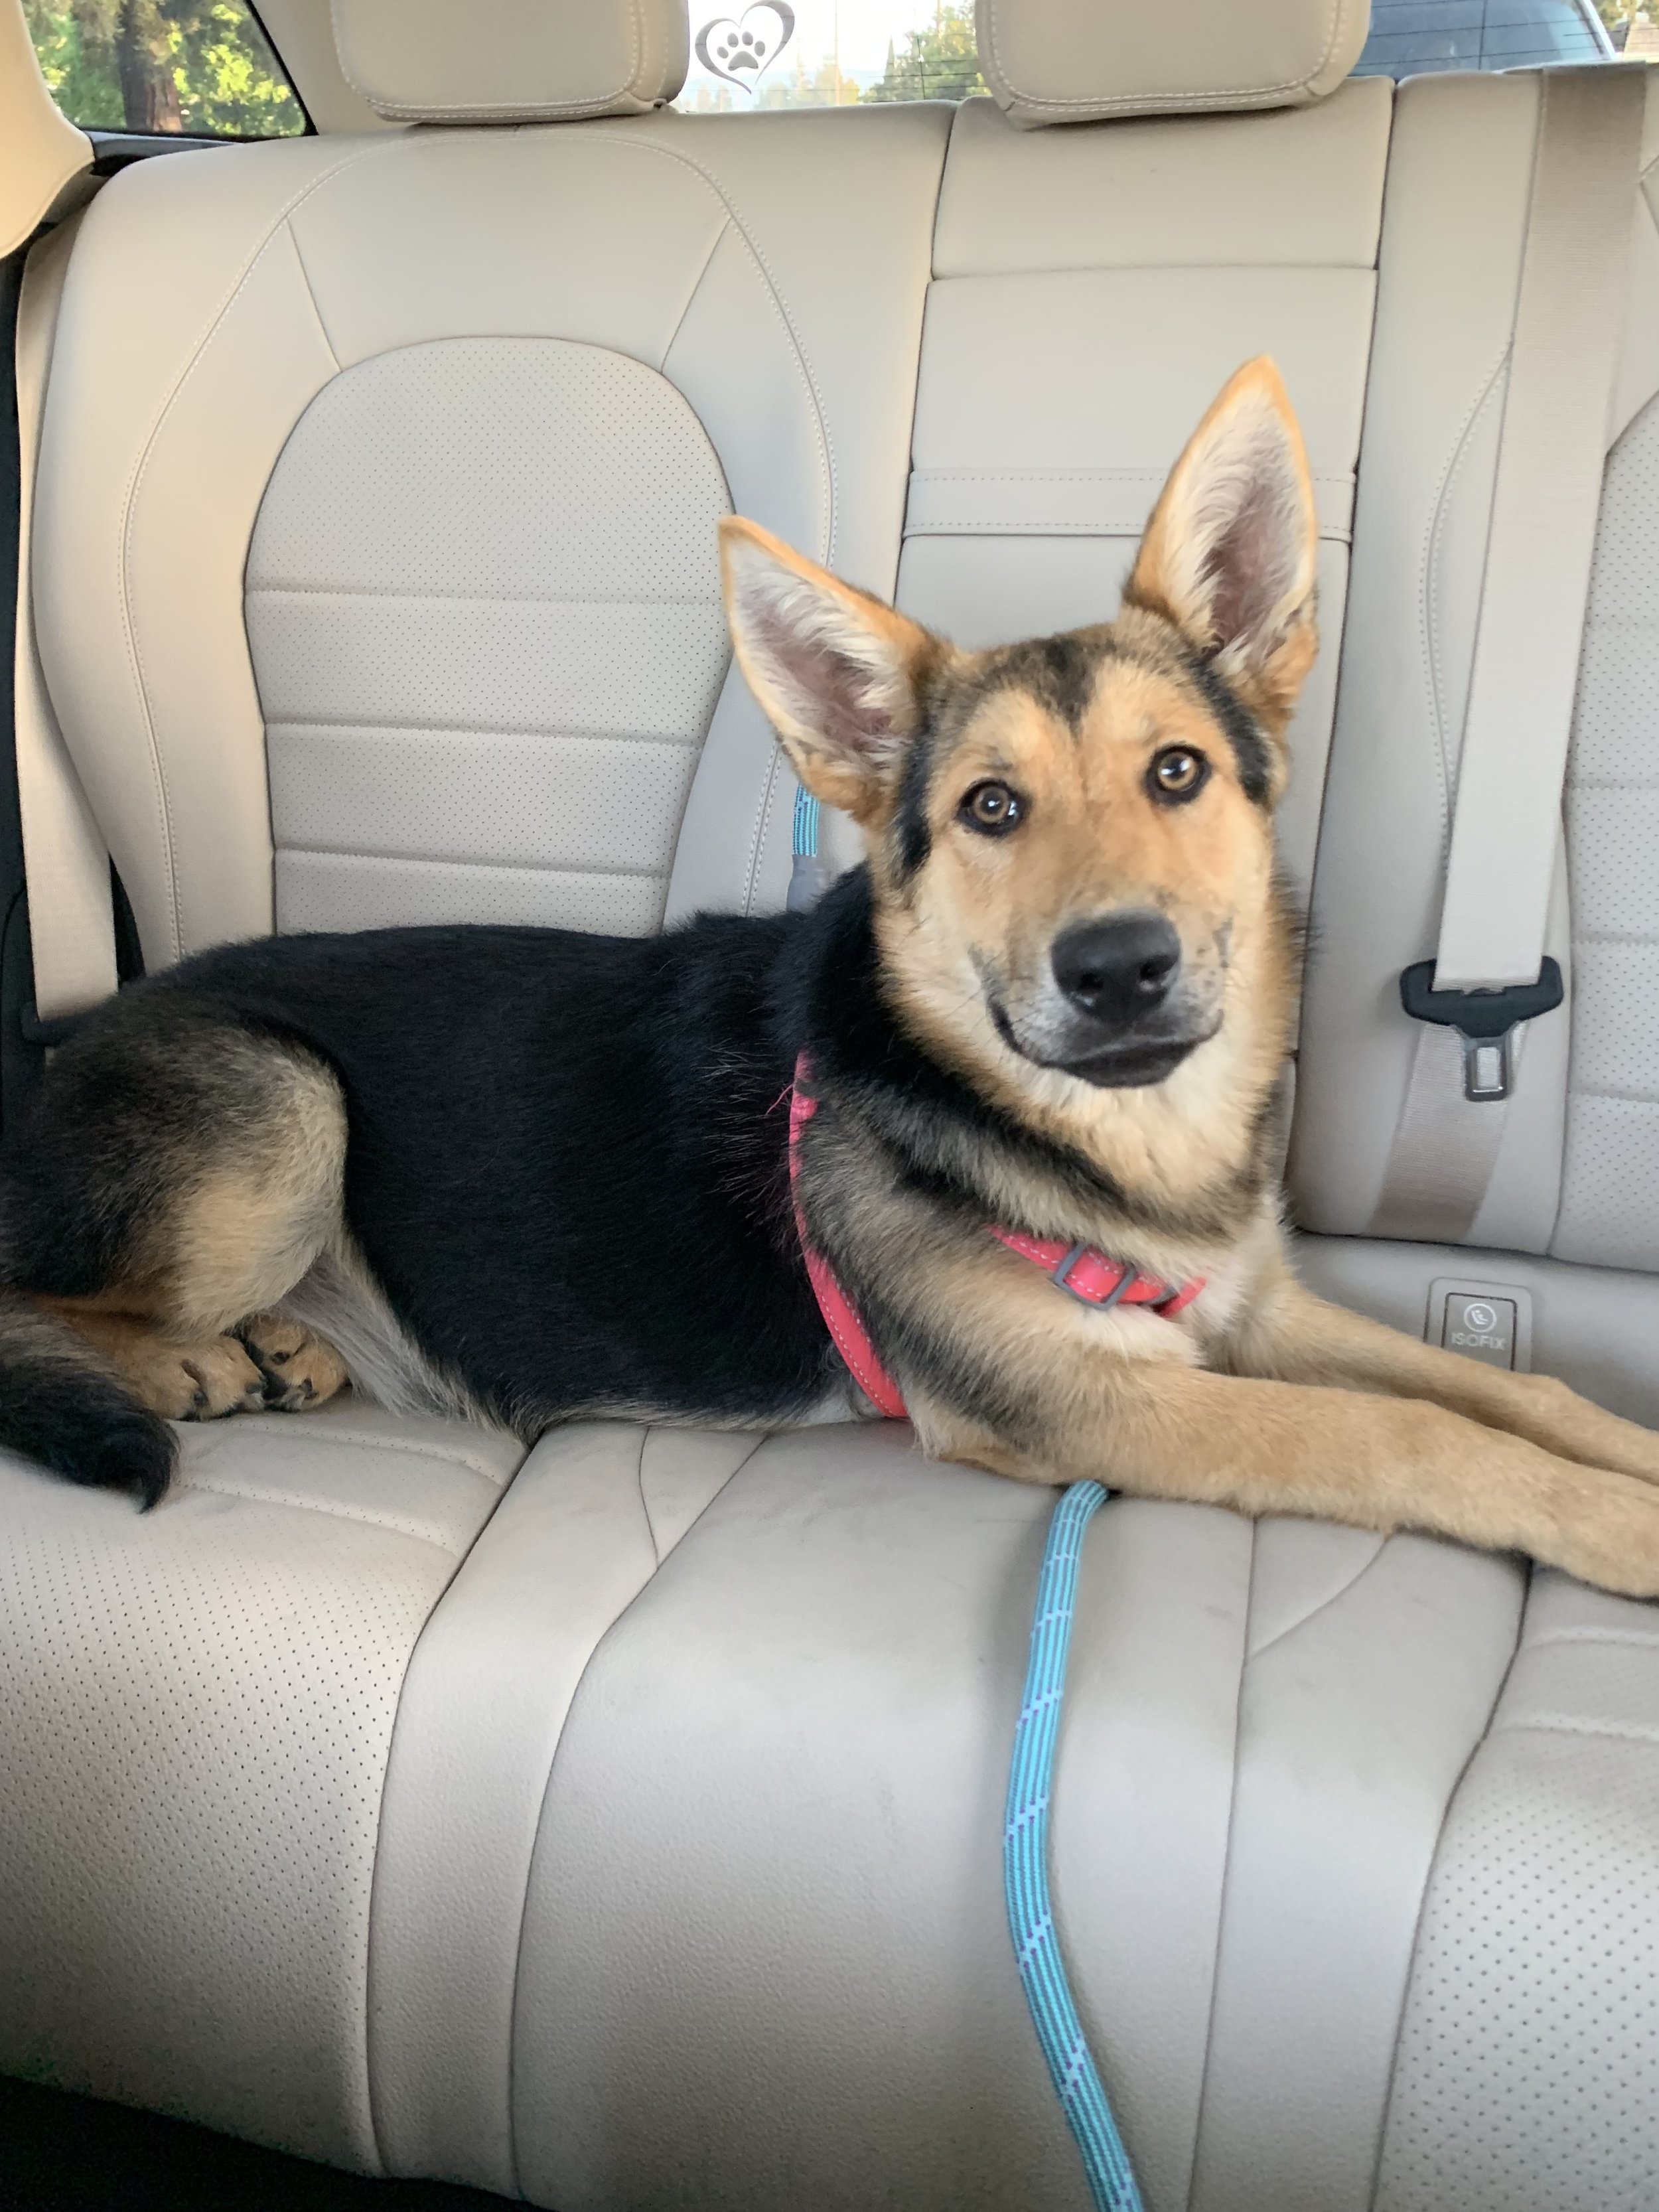 Chloe-ADOPTED   Meet Chloe, now named Brandy by her new family! She is a 6 month old female German Shepherd puppy with a great spirit. We rescued her on her last day at the Los Banos Shelter. Chloe is such a sweetheart and is ready for her forever home. Is that you?